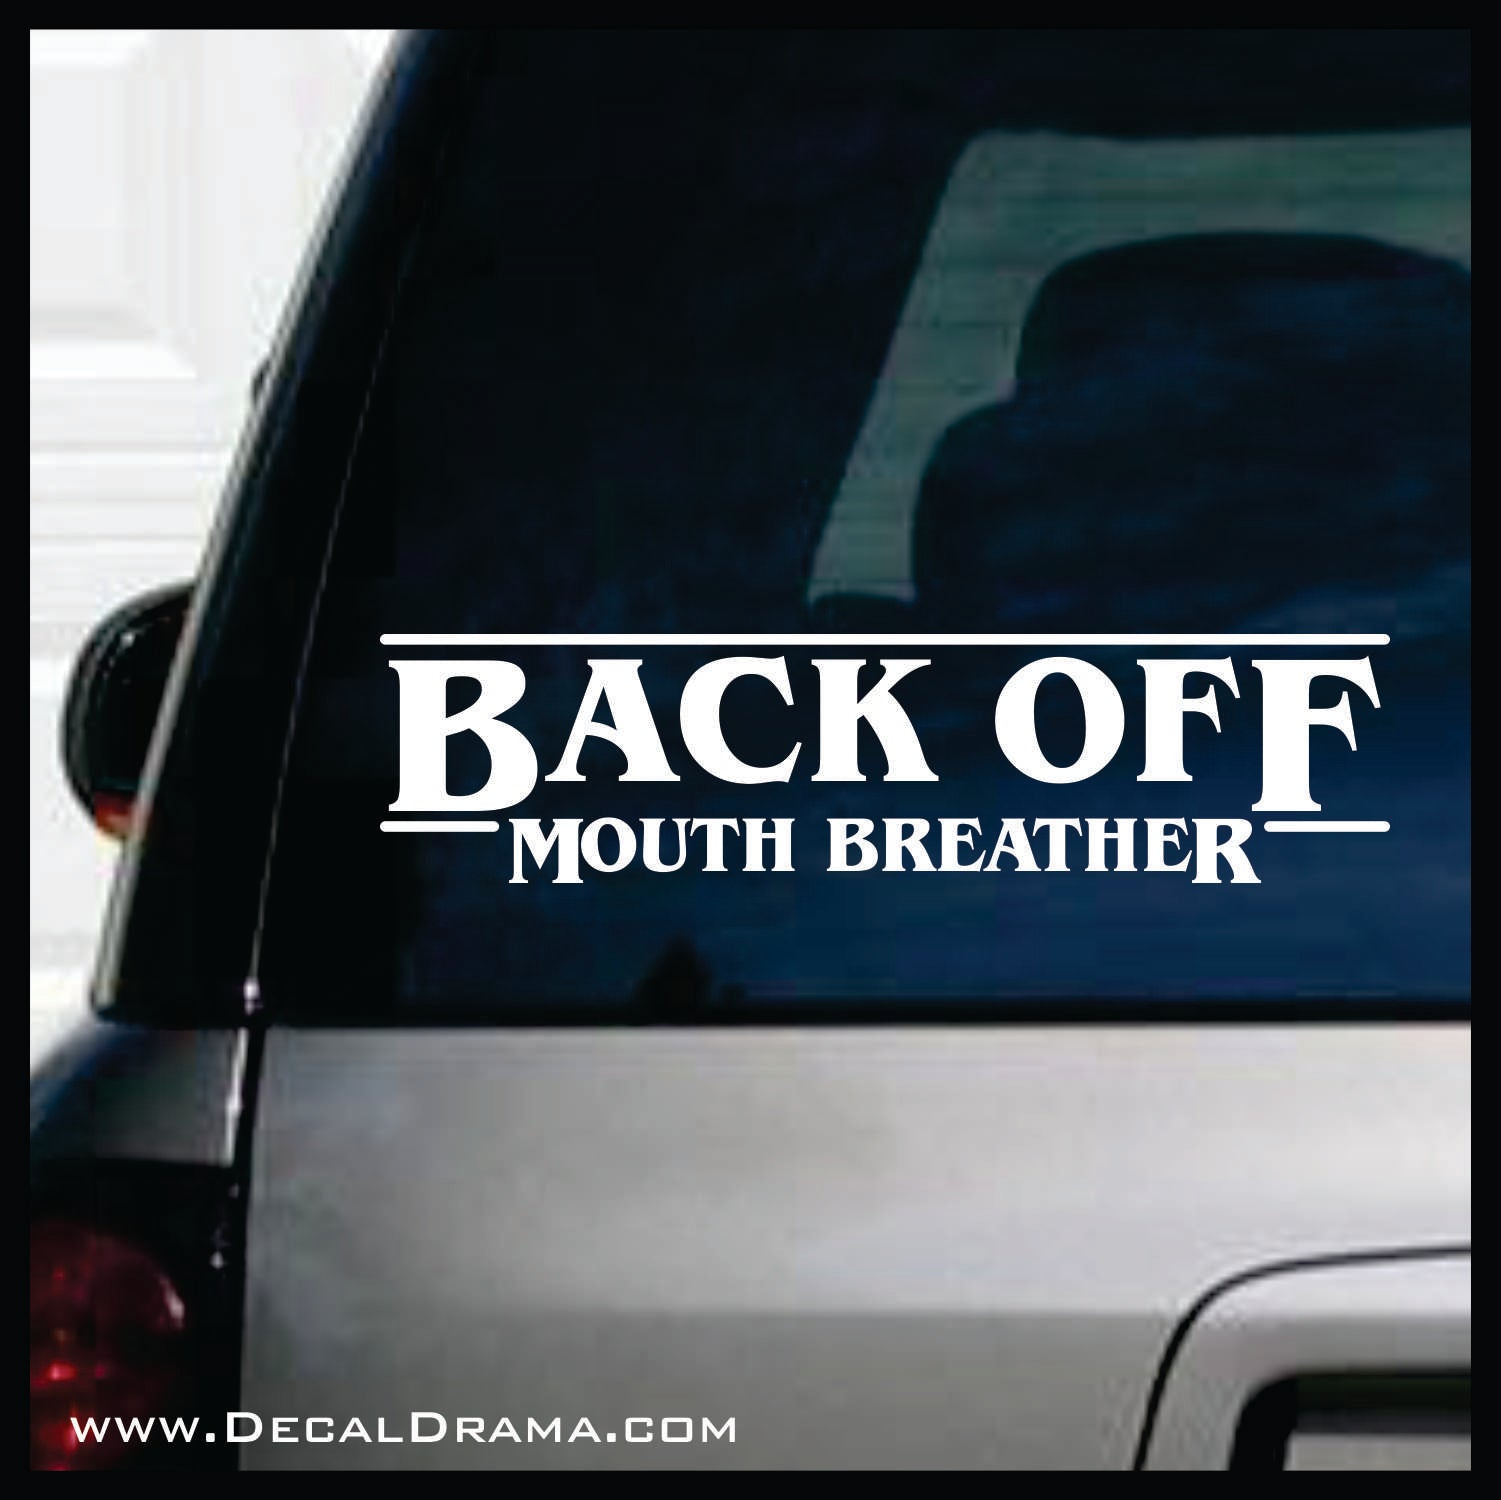 Back Off Mouth Breather, Stranger Things Fan Art Vinyl Decal